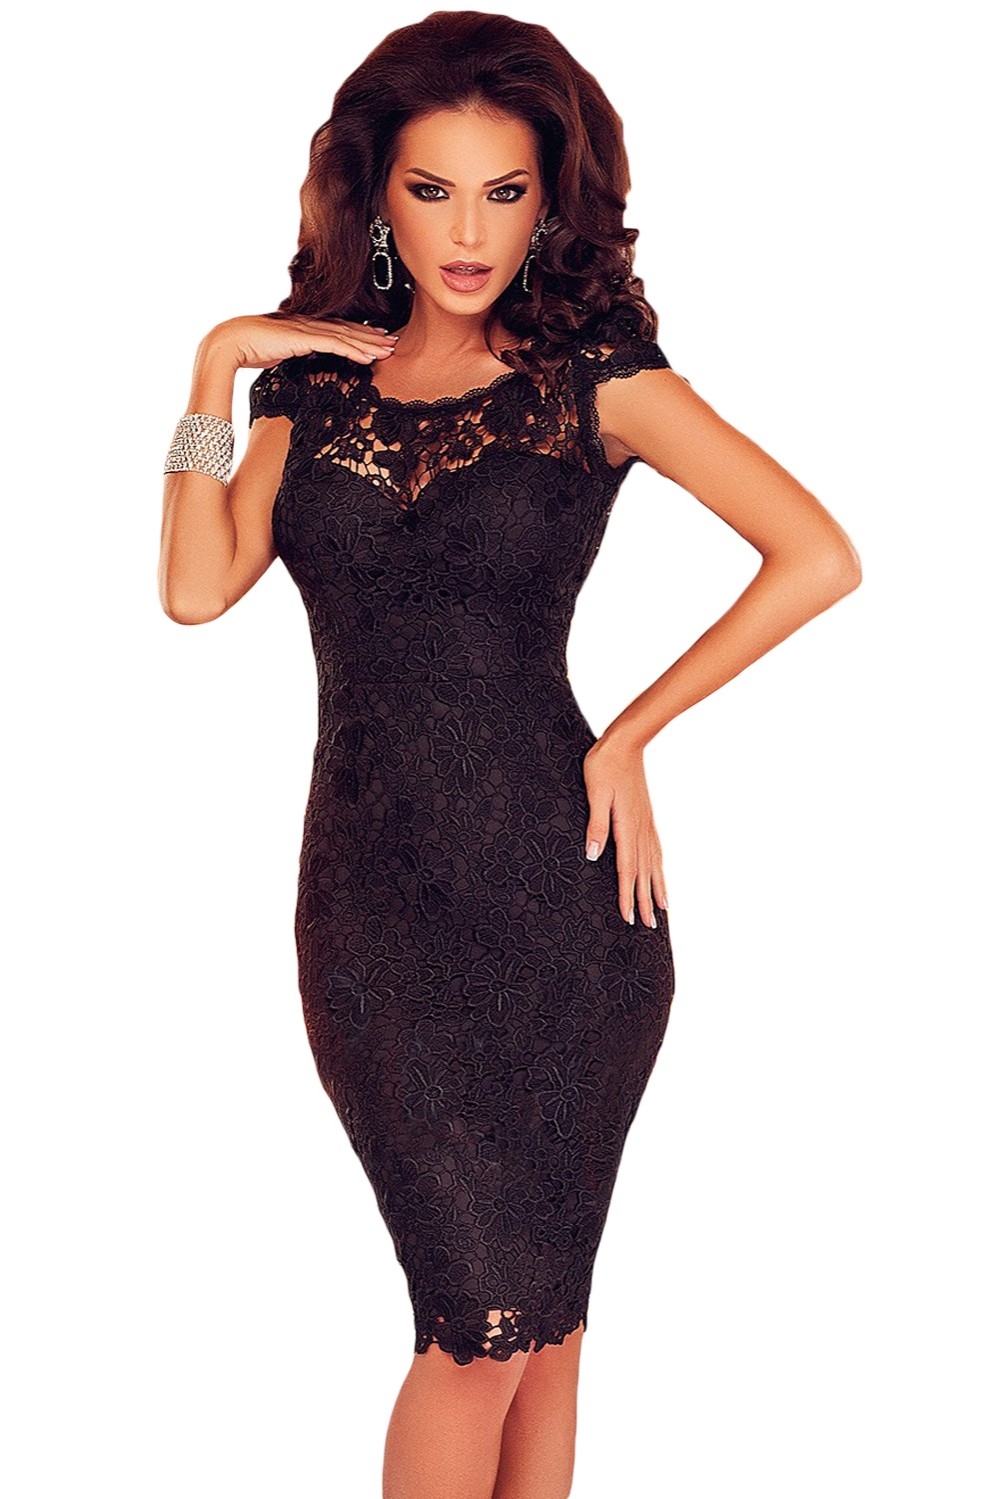 TripleClicks.com: Black Lace Open Back Chained Party Dress